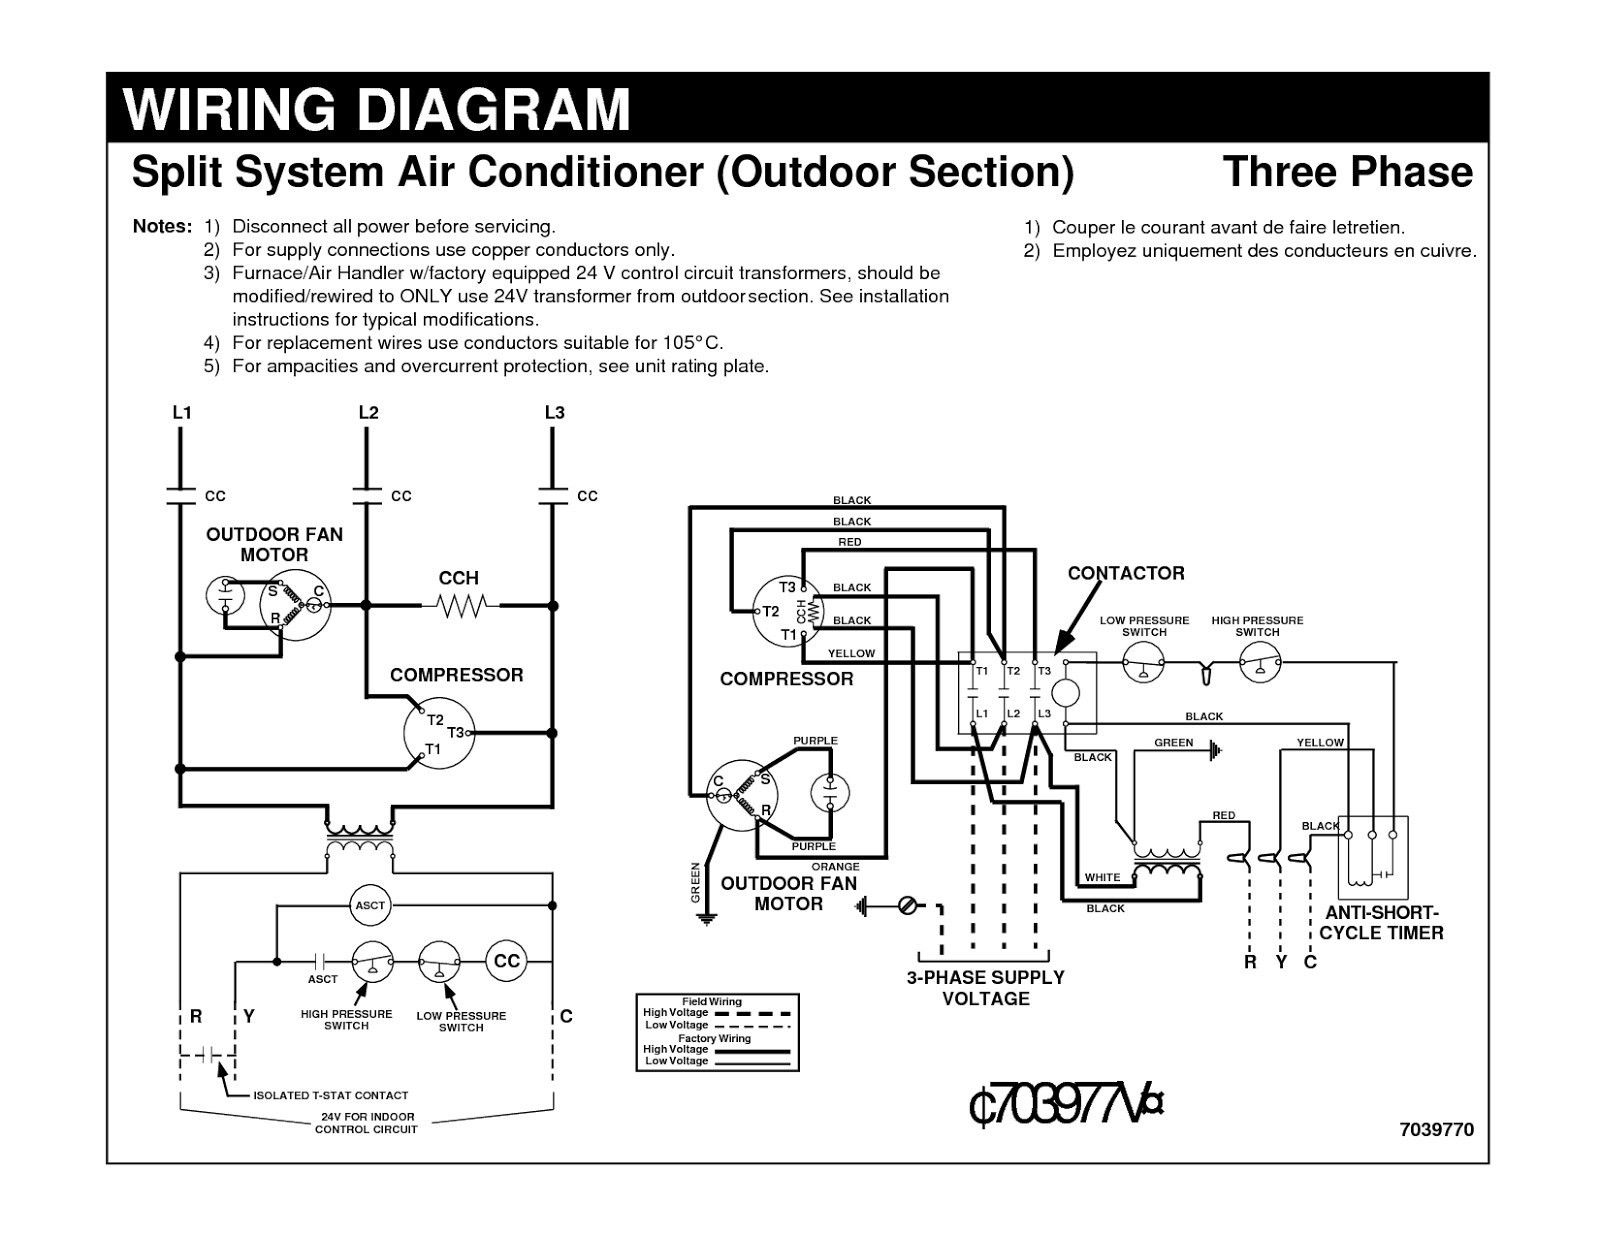 Electrical Wiring Sizing Worksheets | Printable Worksheets and Activities  for Teachers, Parents, Tutors and Homeschool Families | Hvac Wiring Diagram Test |  | indymoves.org